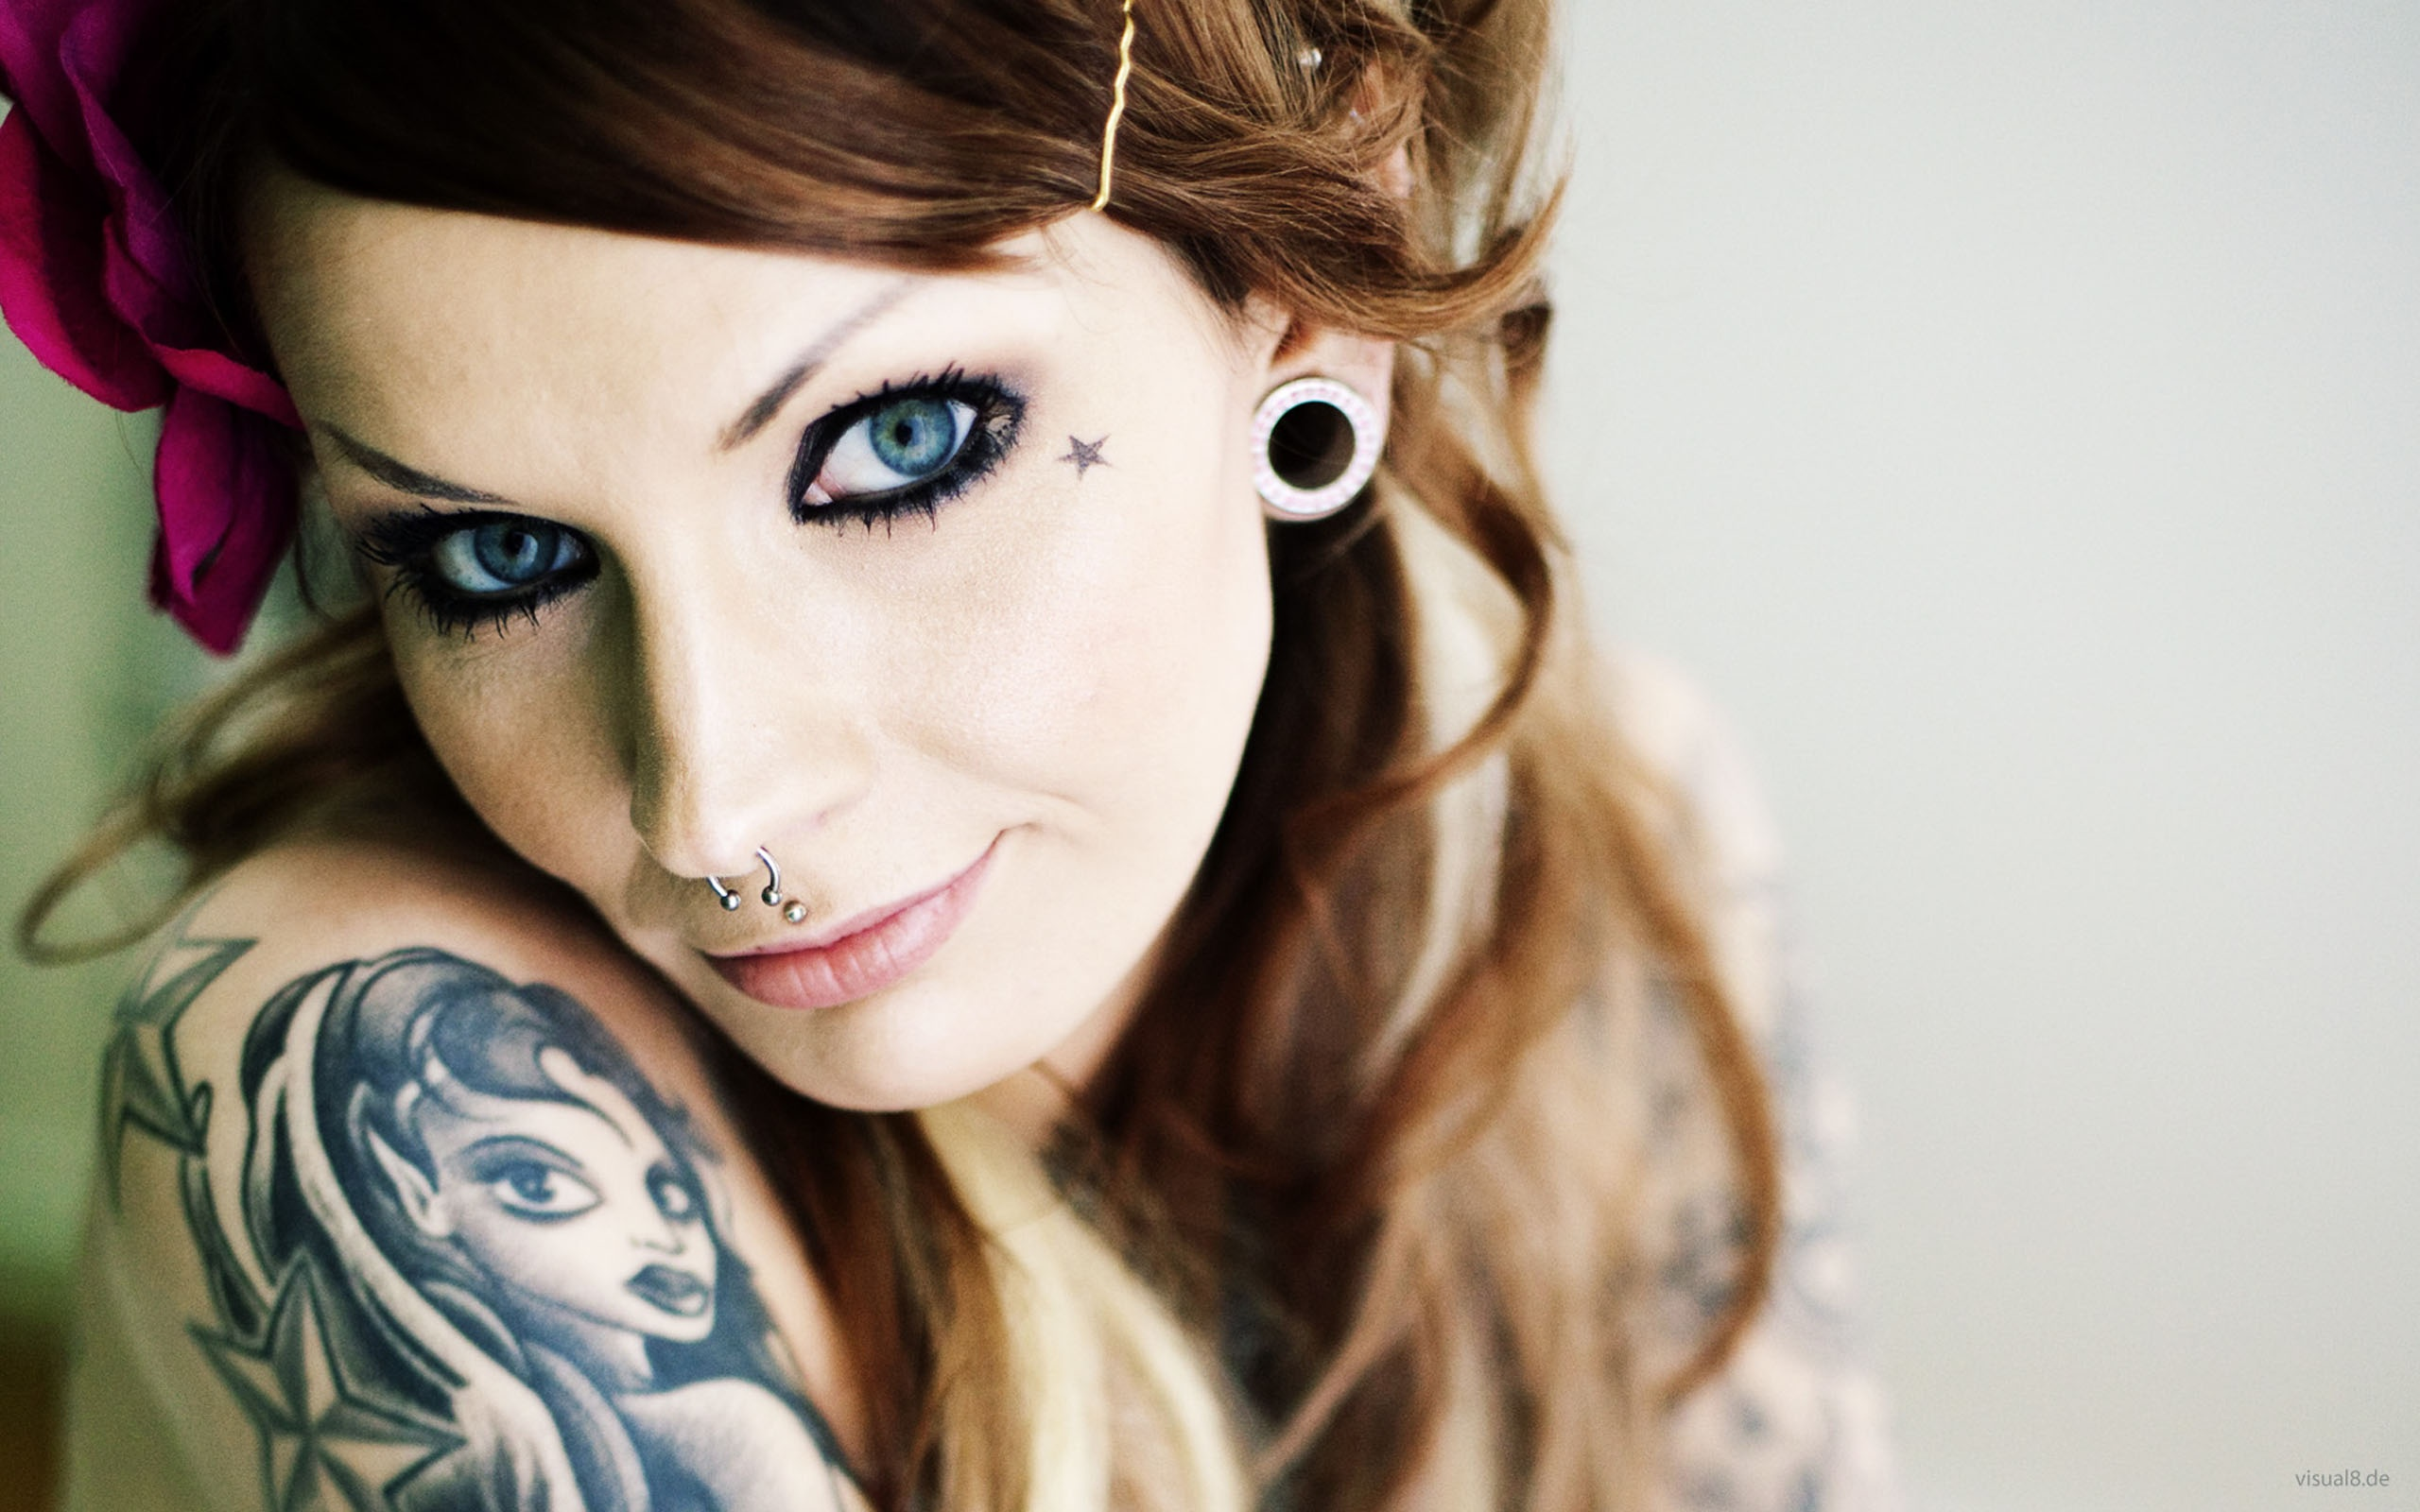 Wallpaper Girl with tattoos and piercings